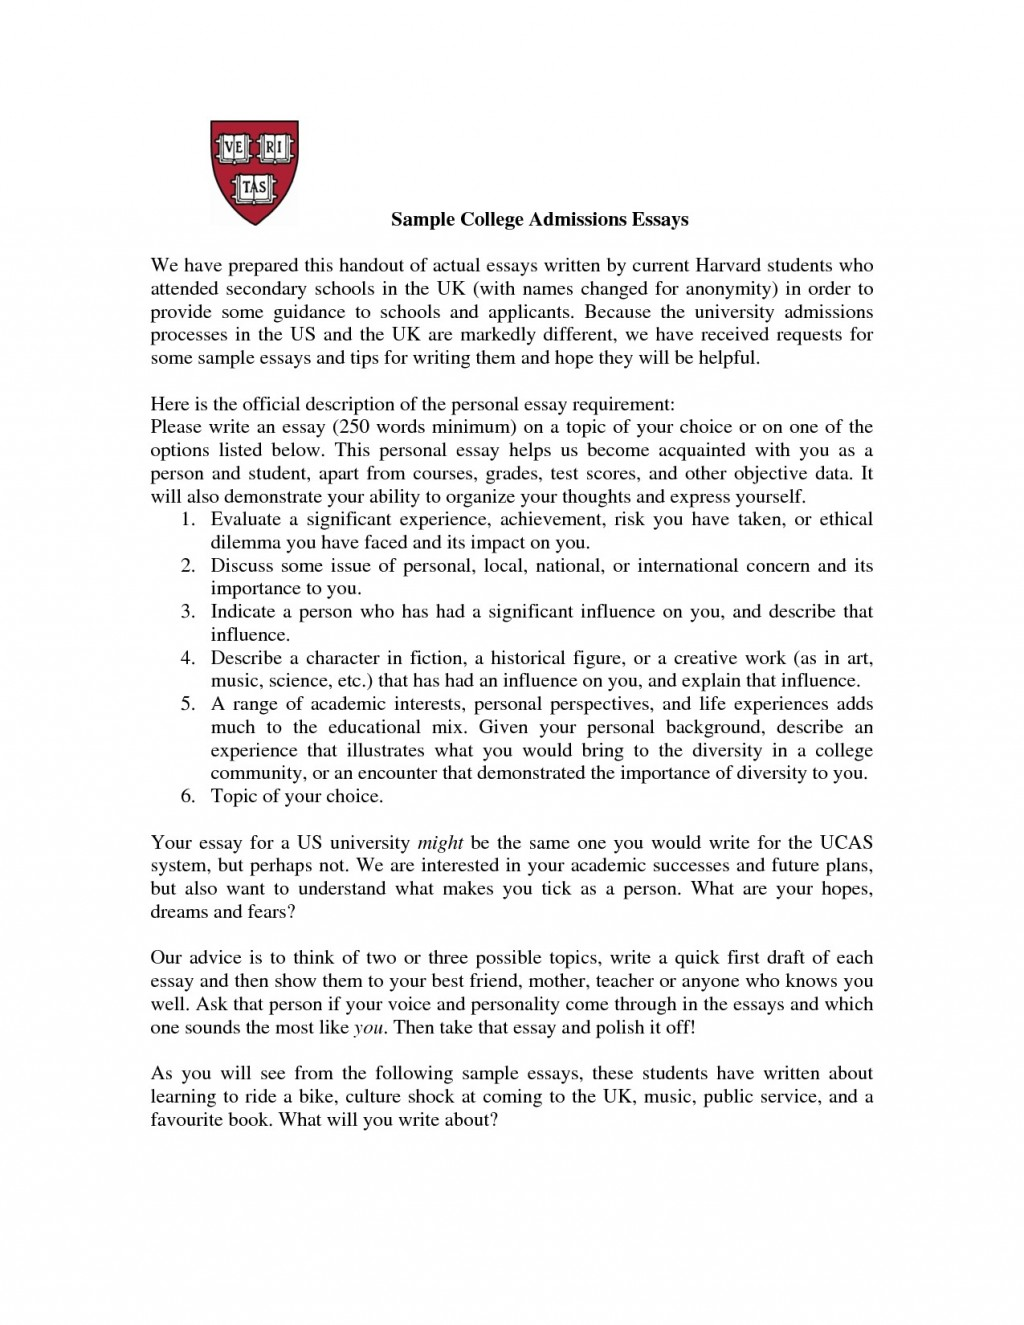 016 Essay Example Perfect College Examples Najmlaemah Com Good Andest Ideas Of Mon Application Sample Transfer Essays Scholarship For Admission Introduction Admissions Harvard Common App Remarkable Bad Large